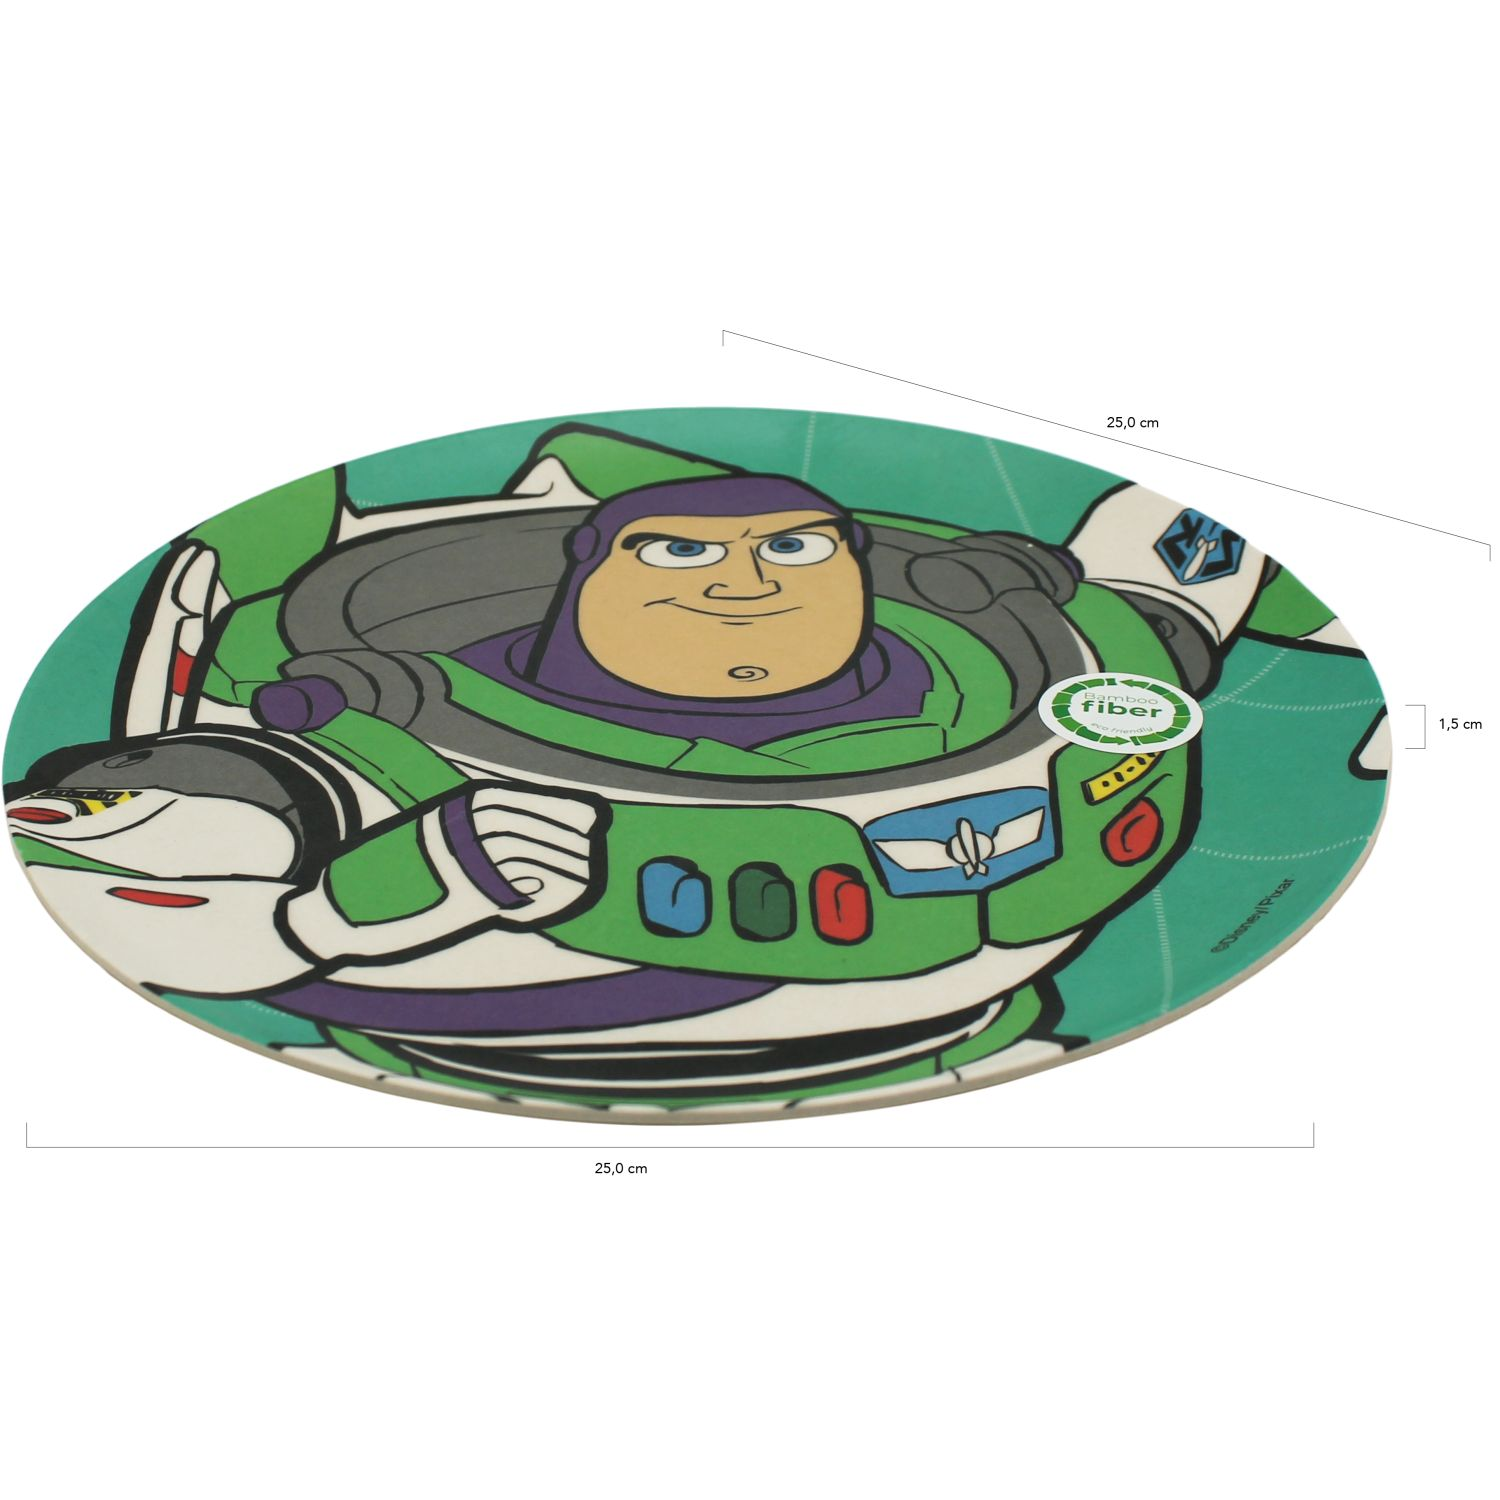 Toy Story Verde plato bamboo toy story 4